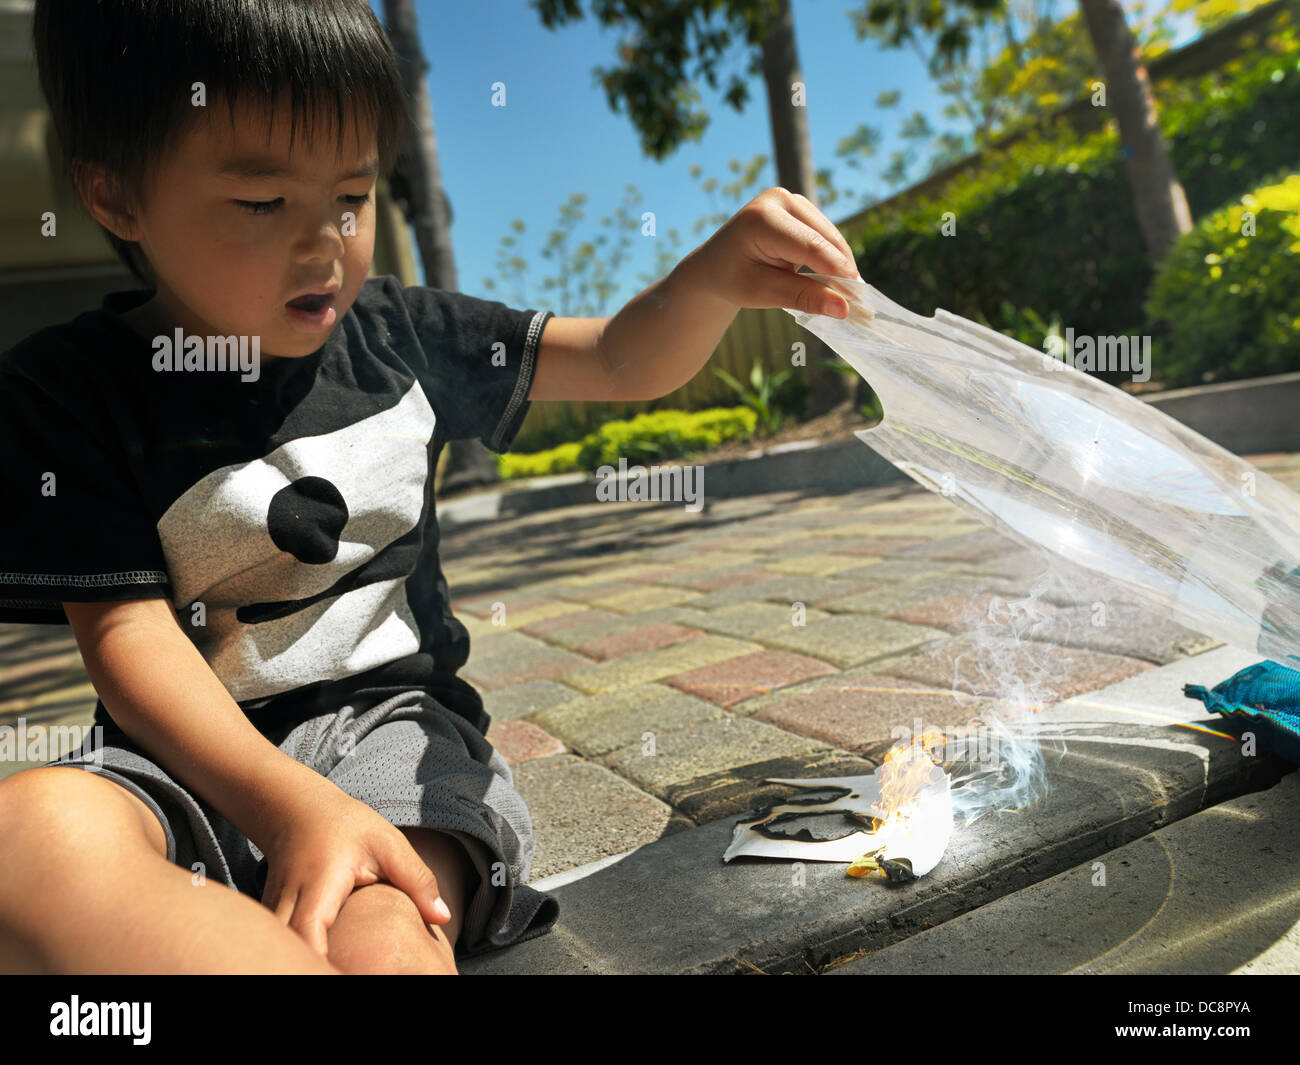 Kid making fire with a magnifying glass. - Stock Image